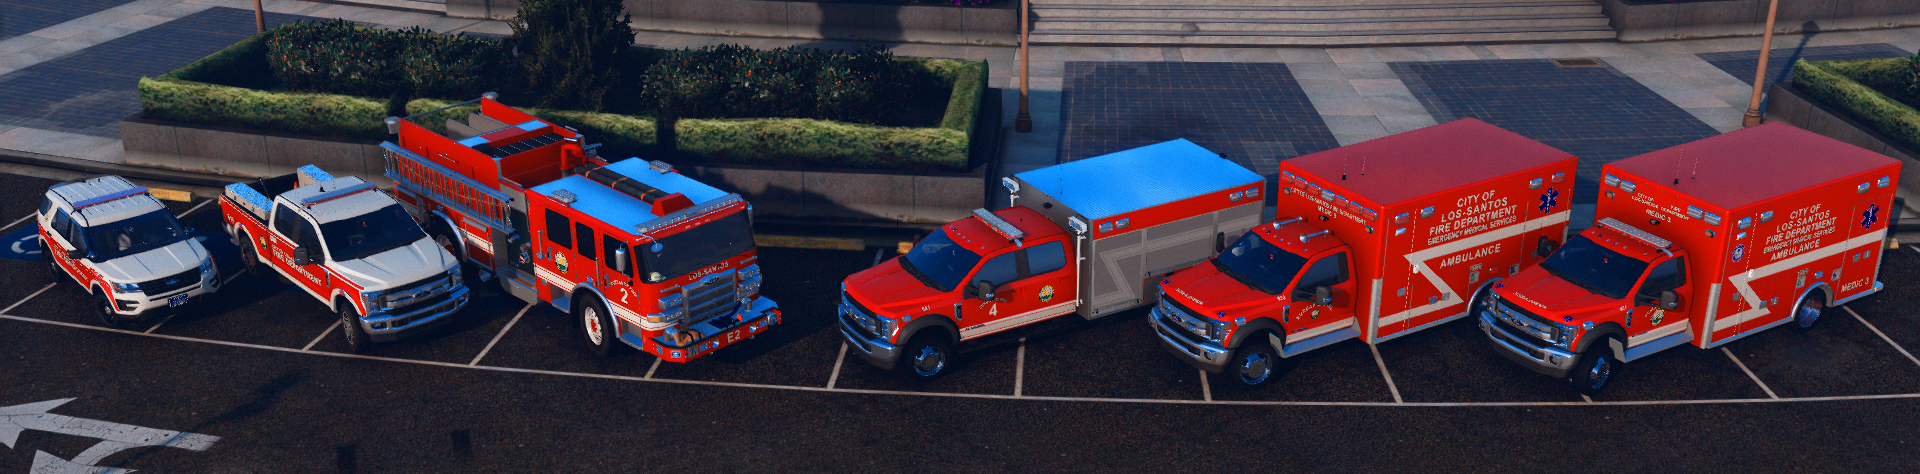 L-S.F.D's awesome fleet